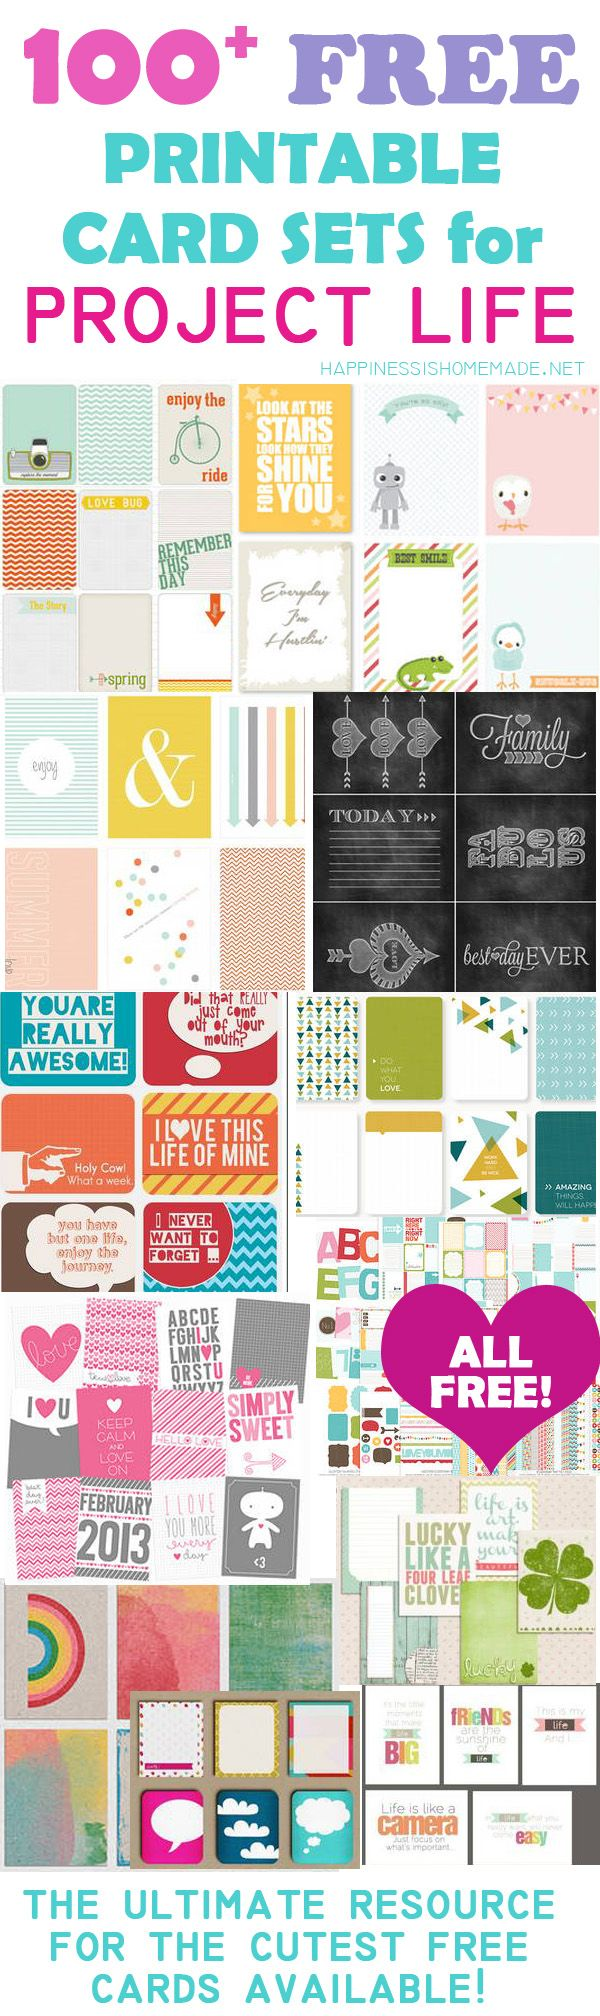 Over 100+ different Free Printable Project Life Card sets!